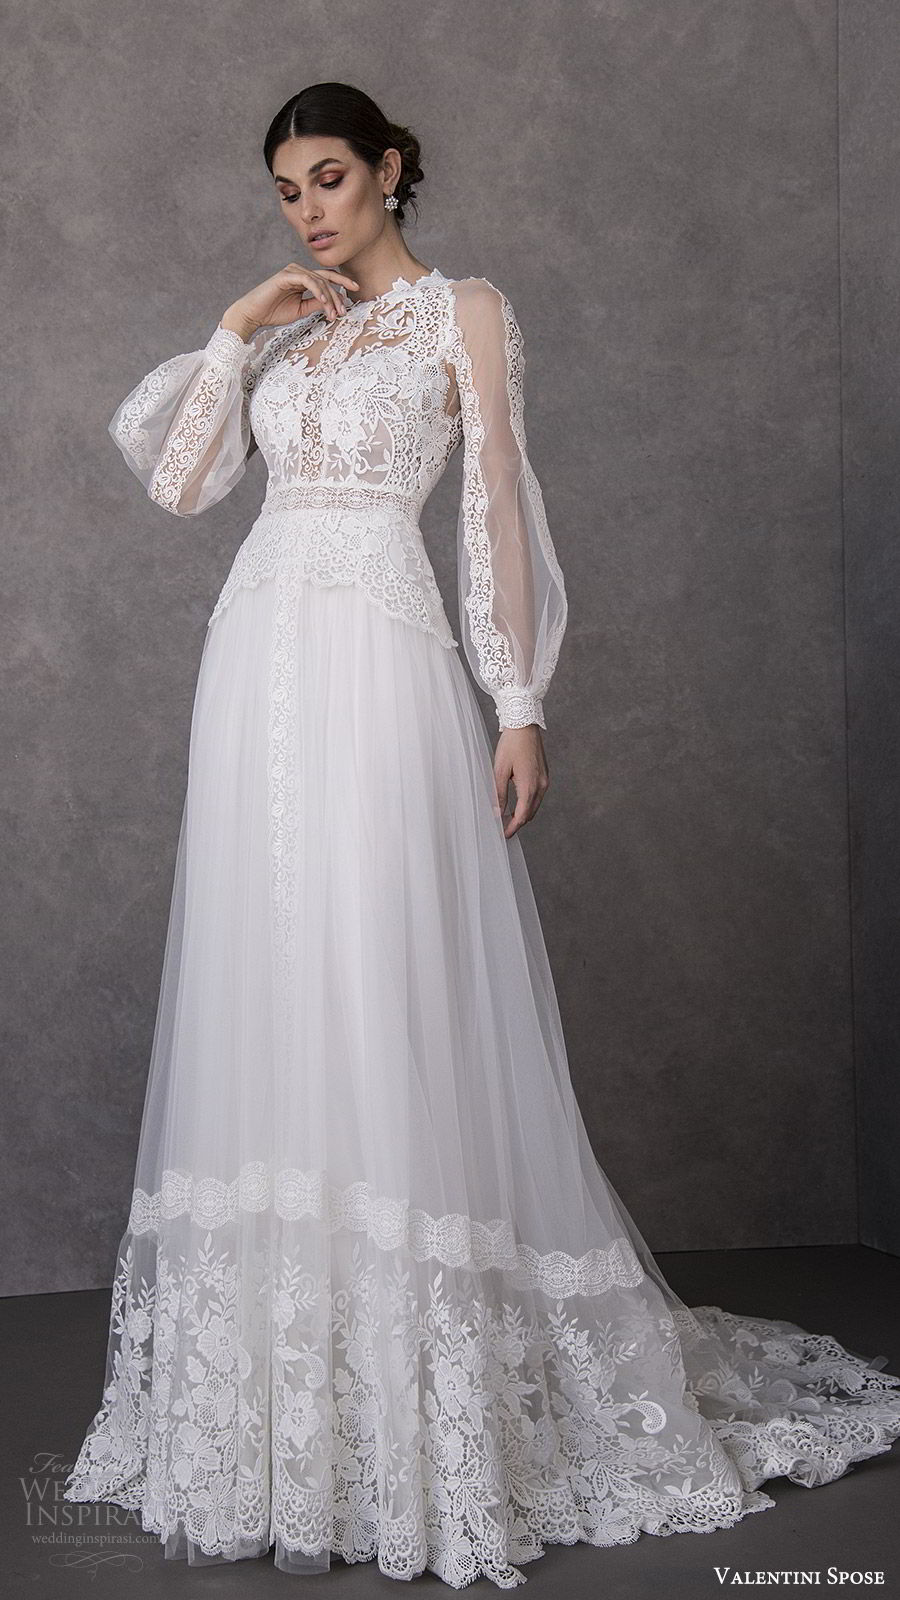 valentini spose spring 2020 bridal illusion bishop sleeves high neck lace bodice soft a line wedding dress (15) romantic boho chic mv